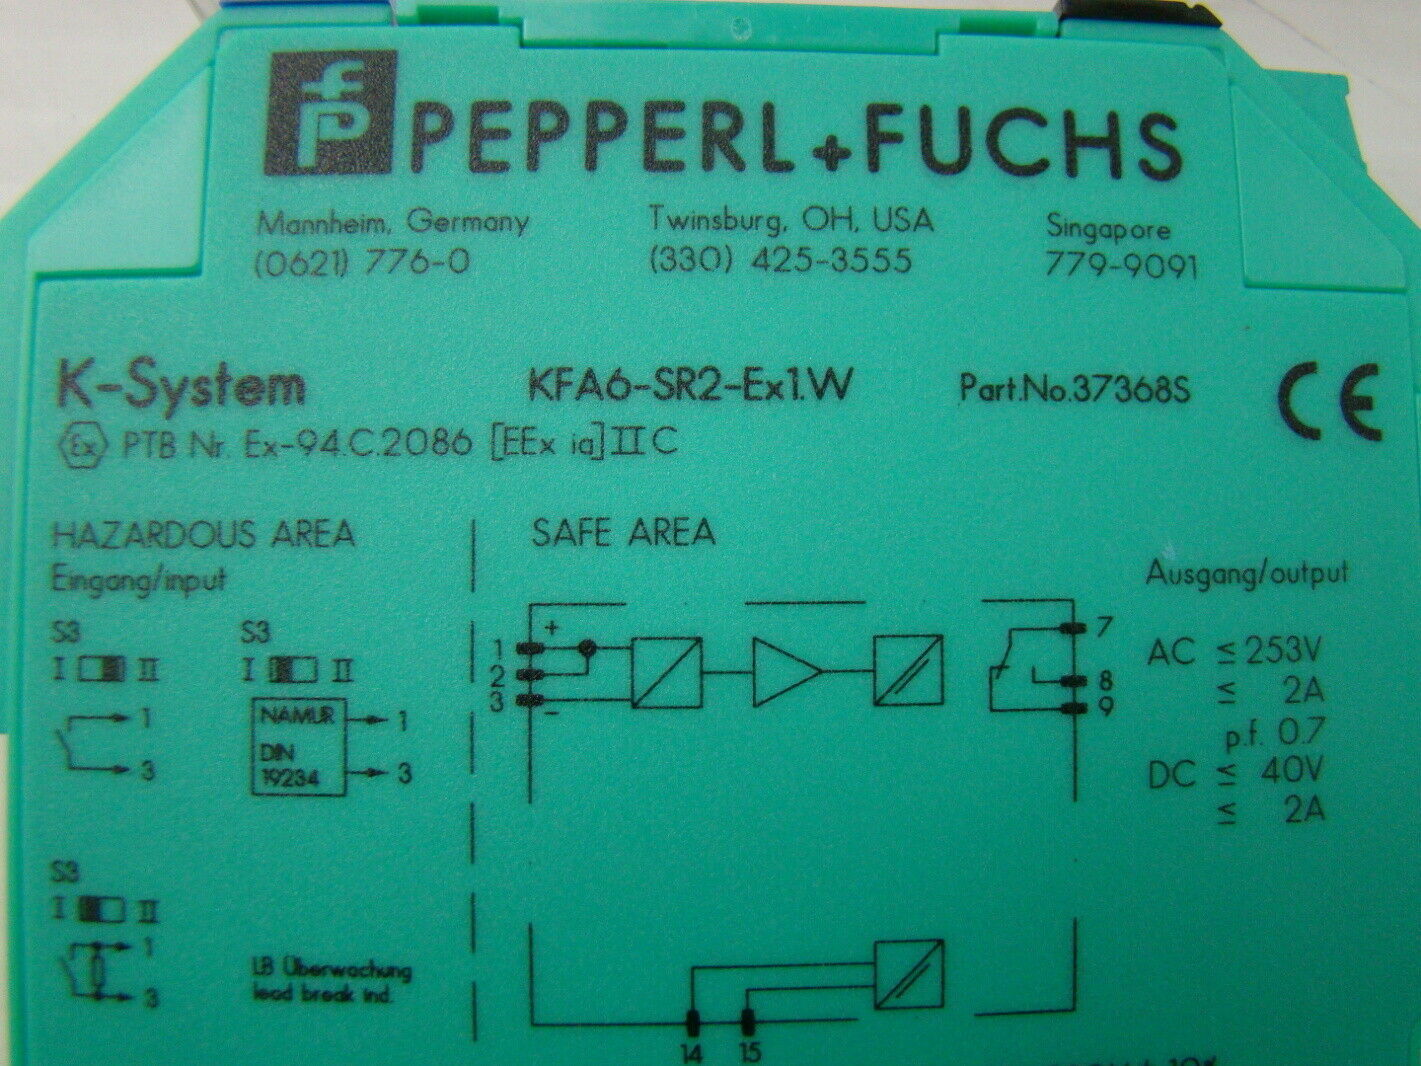 kfd2 sr2 ex1 w wiring diagram   29 wiring diagram images